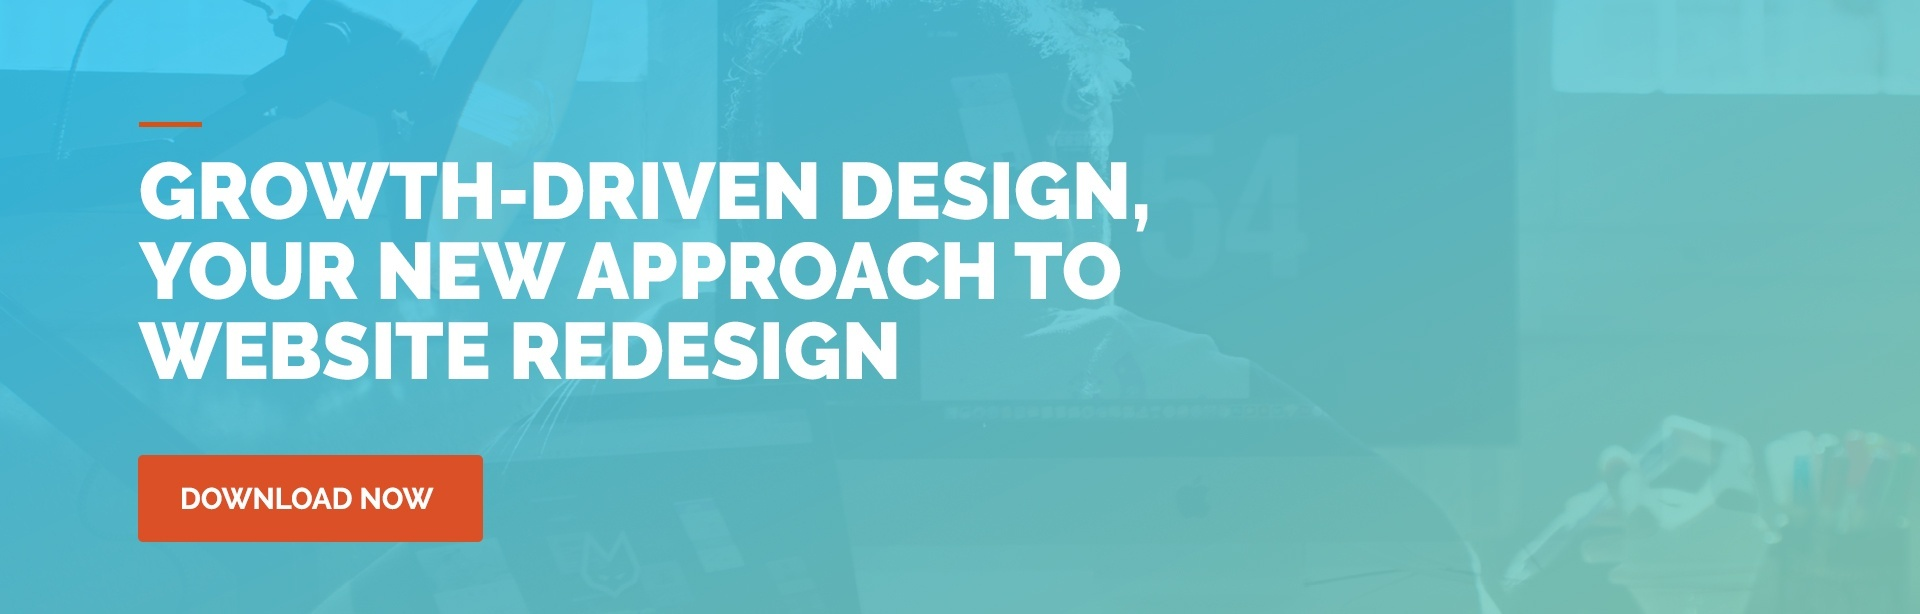 Growth-Driven Design, Your New Approach to Website Redesign